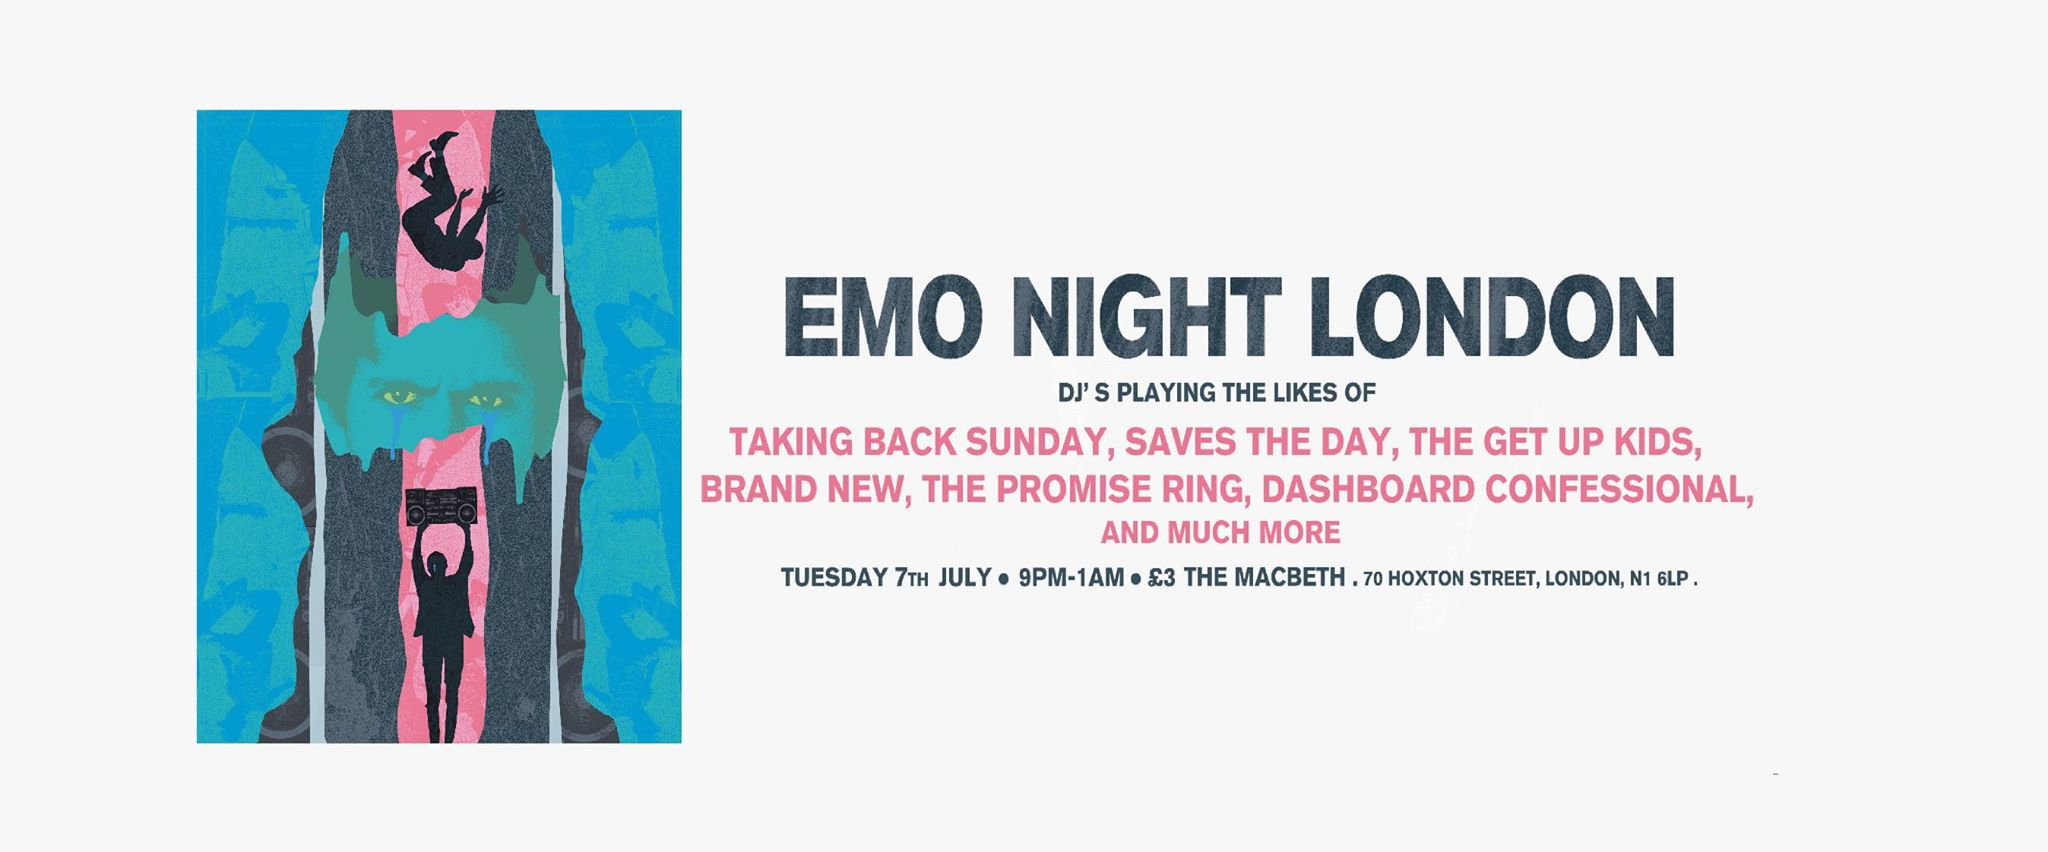 Emo Night London   Tuesday 7th July   The Macbeth   70 Hoxton Street, London, N1 6LP (Nearest tube: Old Street)   9pm - 1am   £3 Entry   18+ (Bring ID)   -------   Hello all, this is the first ever Emo Night London, playing classics of the emo genre from the 90s to the present with a little pop punk thrown in for good measure.    DJ's Alex Mills and Simon Benham playing the likes of...   Taking Back Sunday, Saves The Day, The Get Up Kids, Thrice, Brand New, The Promise Ring, Senses Fail, Modern Baseball, The Starting Line, Weezer, Dashboard Confessional, You Blew It, American Football, Hey Mercedes, and much more.    **Leave your requests on this page!**  **Please share this event and get the word out**